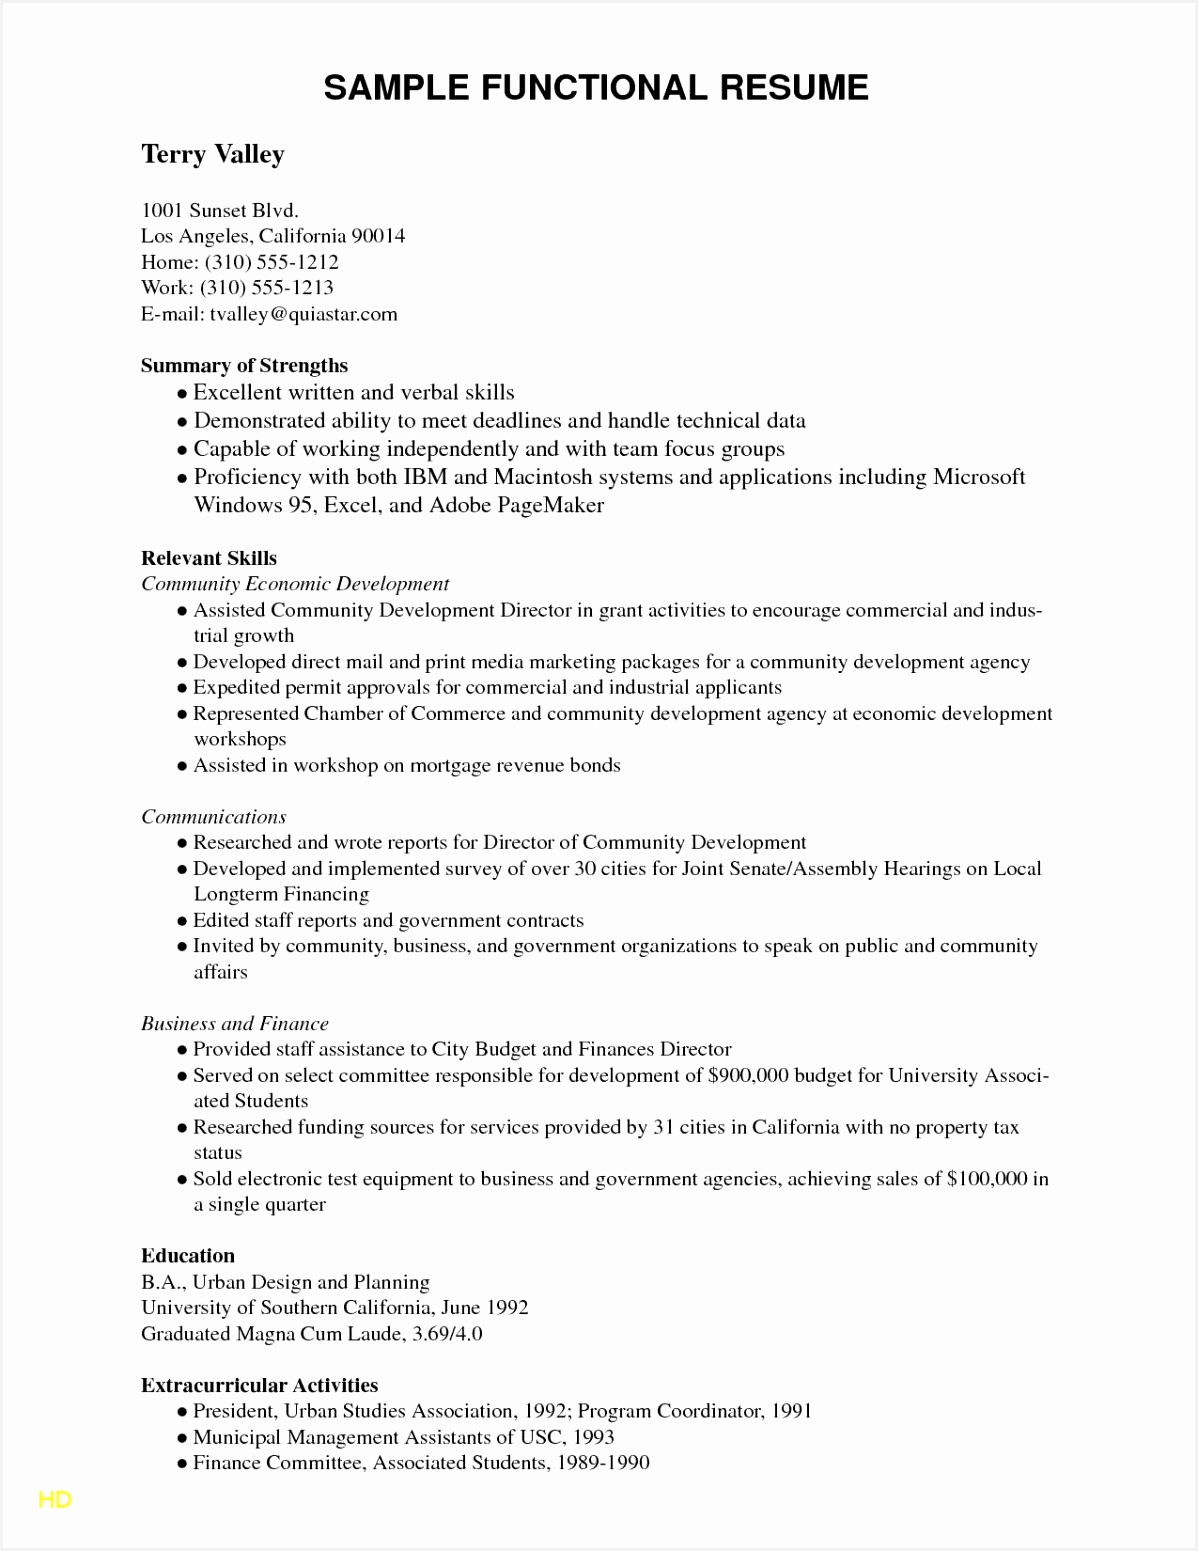 Microsoft Trainer Sample Resume Qxqav Fresh Sample Resume for Ca Articleship Training Free Template Design Of Microsoft Trainer Sample Resume Dcwig Elegant 53 Elegant Microsoft Word Free Resume Templates Awesome Resume